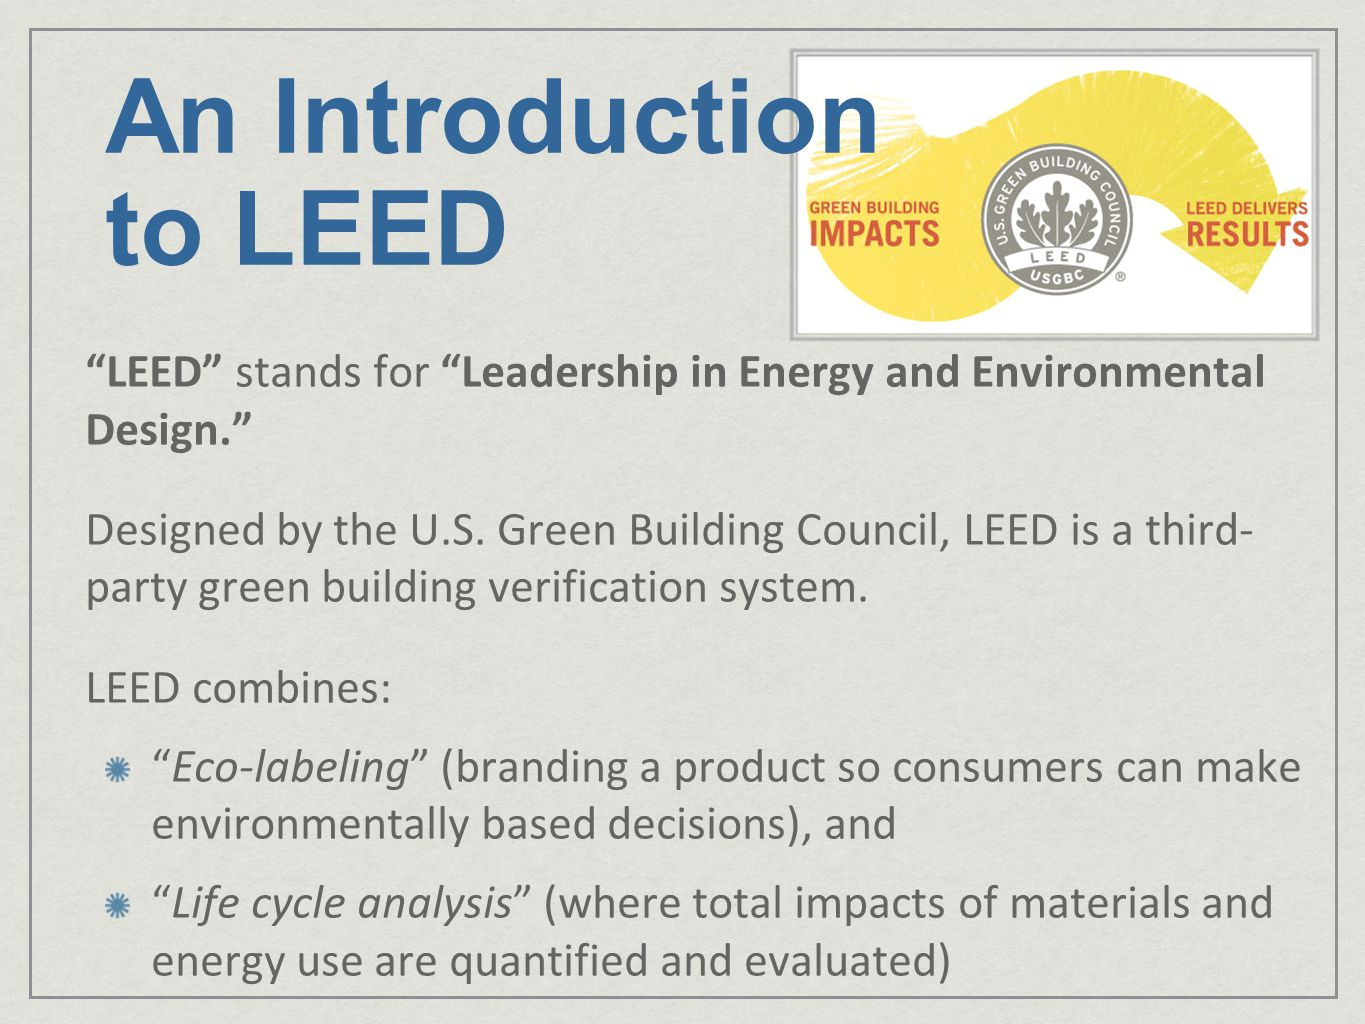 An Introduction to LEED